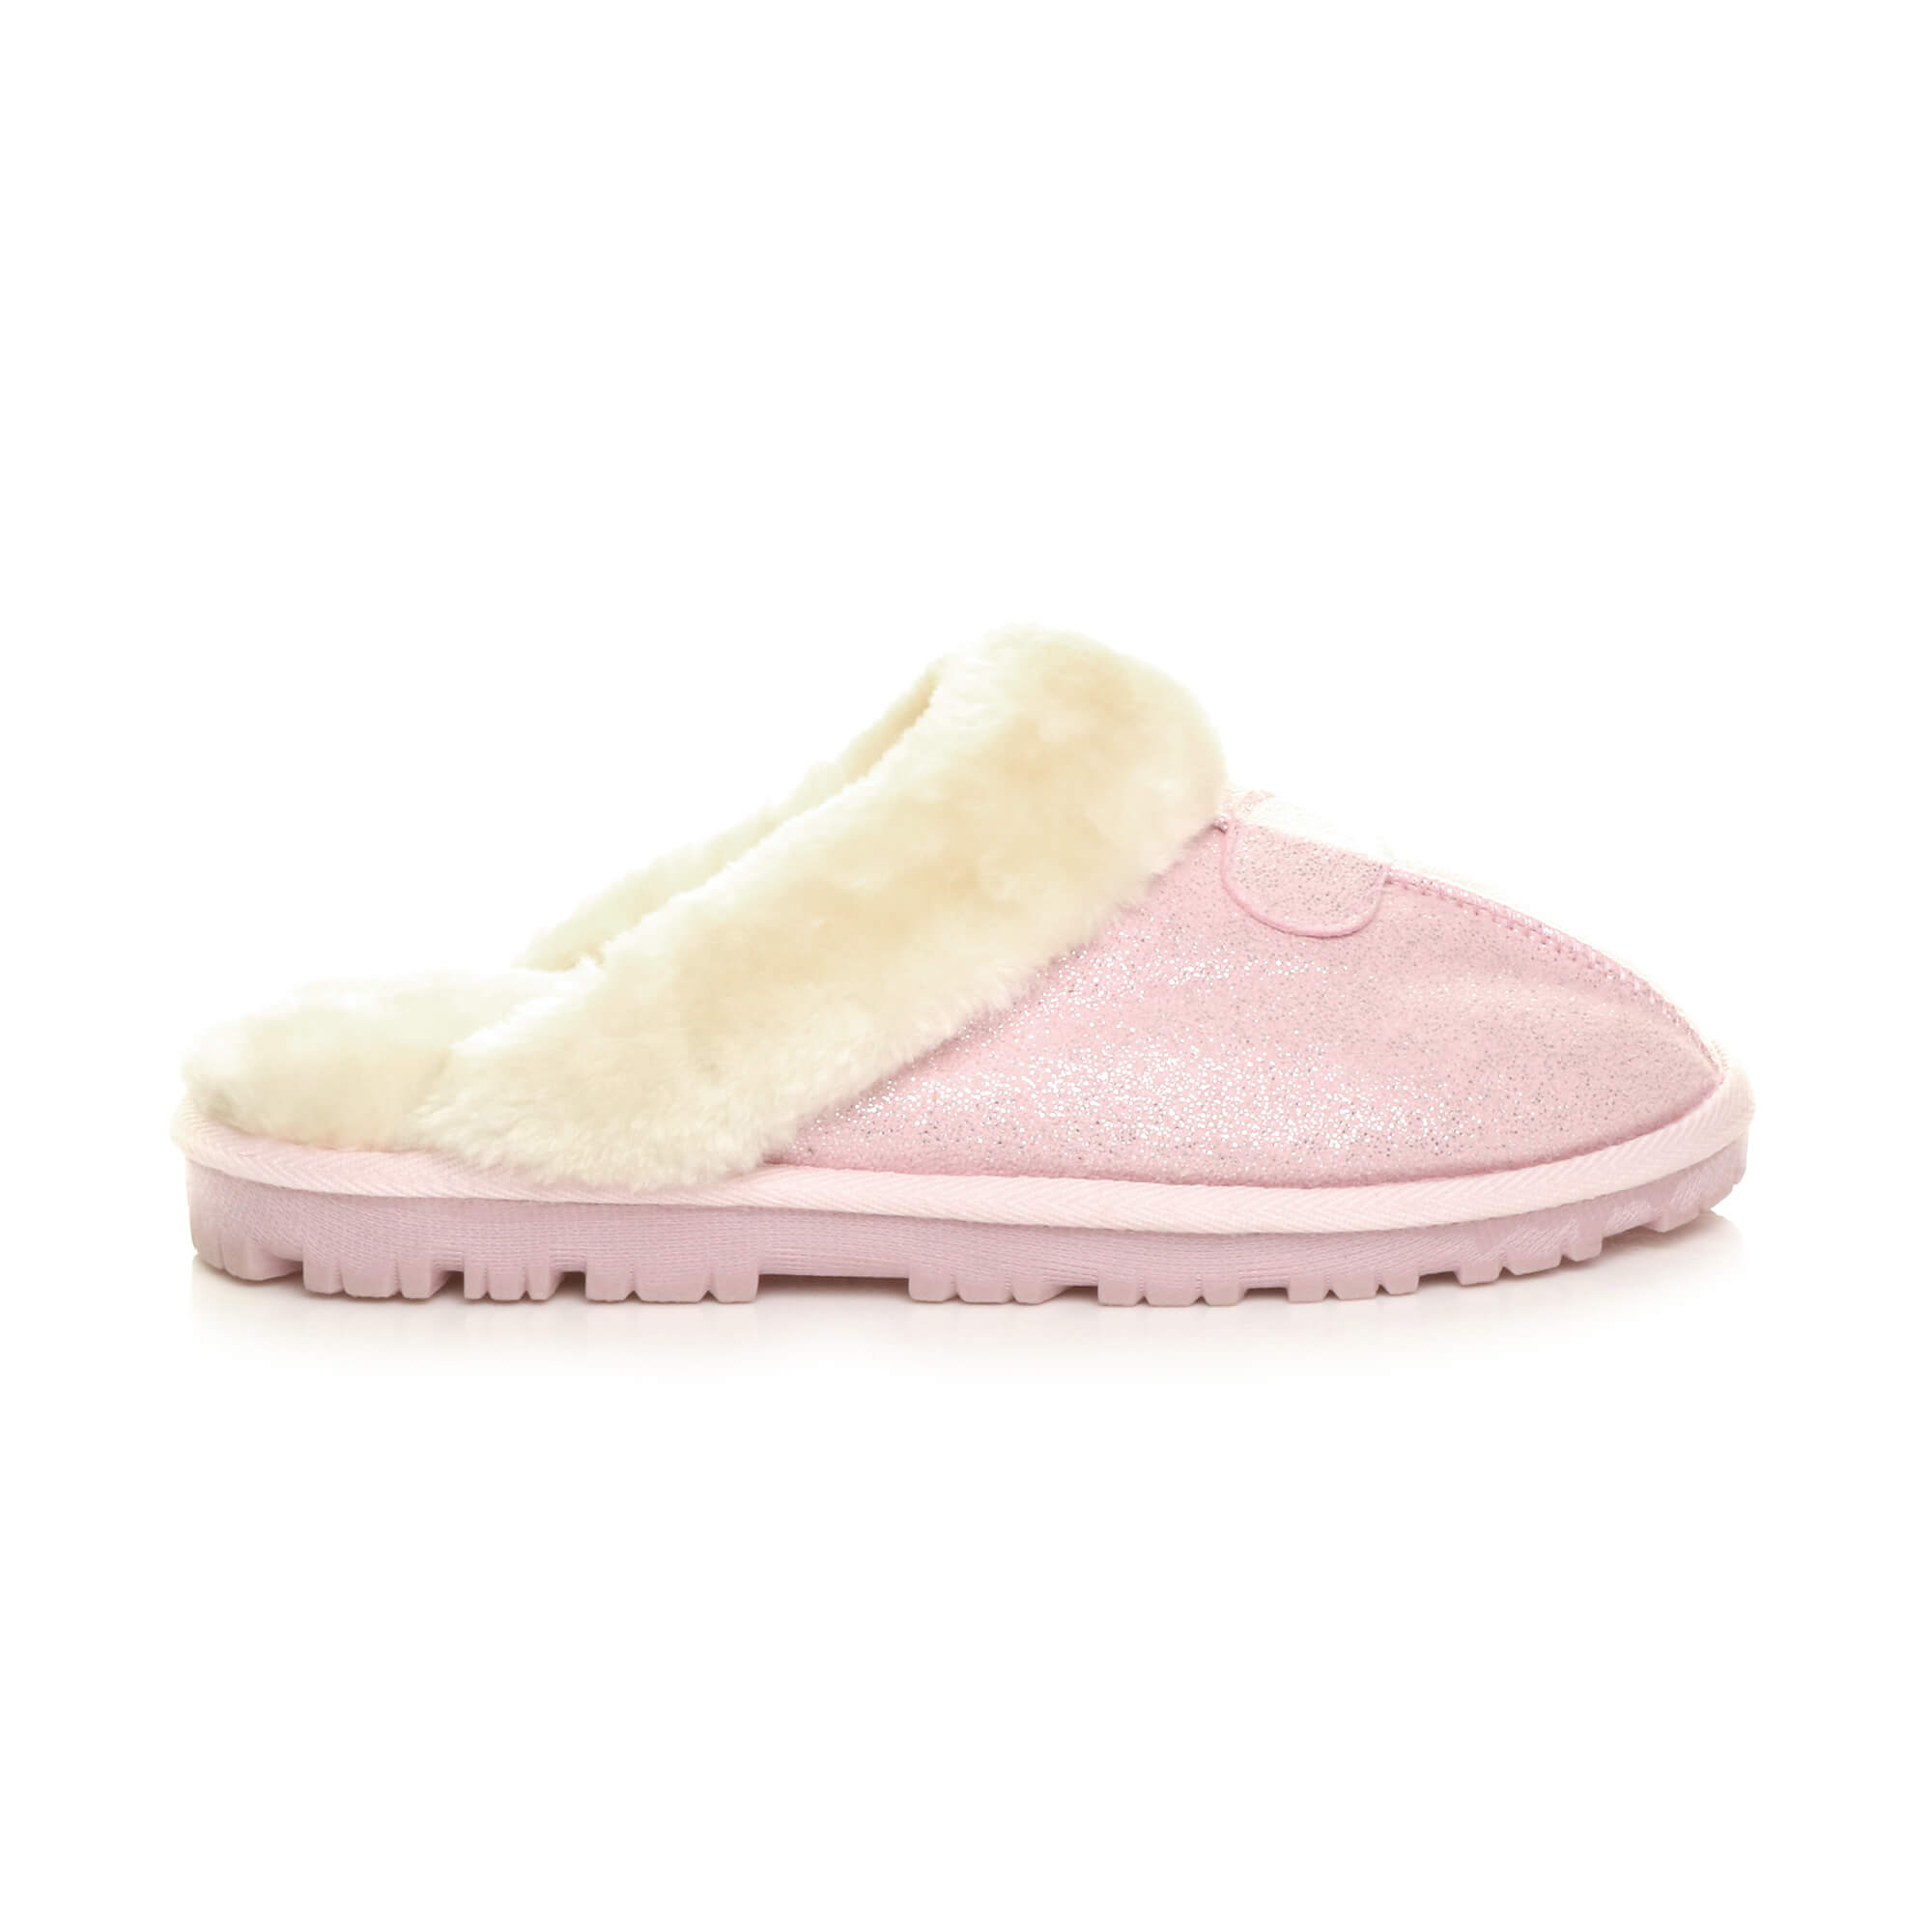 WOMENS-LADIES-FLAT-FUR-LINED-COMFORTABLE-WINTER-MULES-SLIPPERS-HOUSE-SHOES-SIZE thumbnail 80